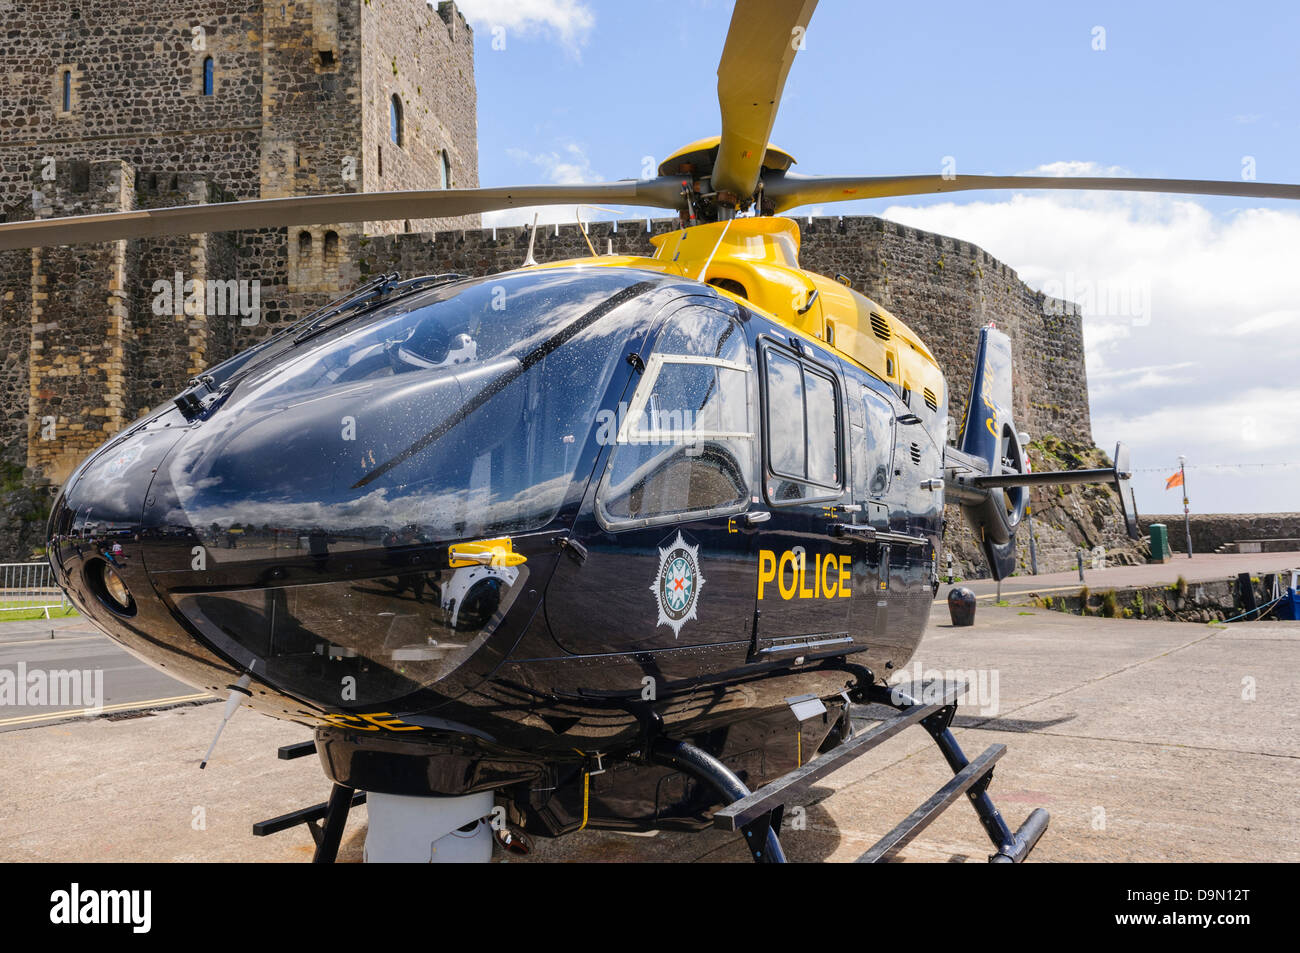 PSNI police helicopter Eurocopter EC-135 G-PSNI on the ground - Stock Image